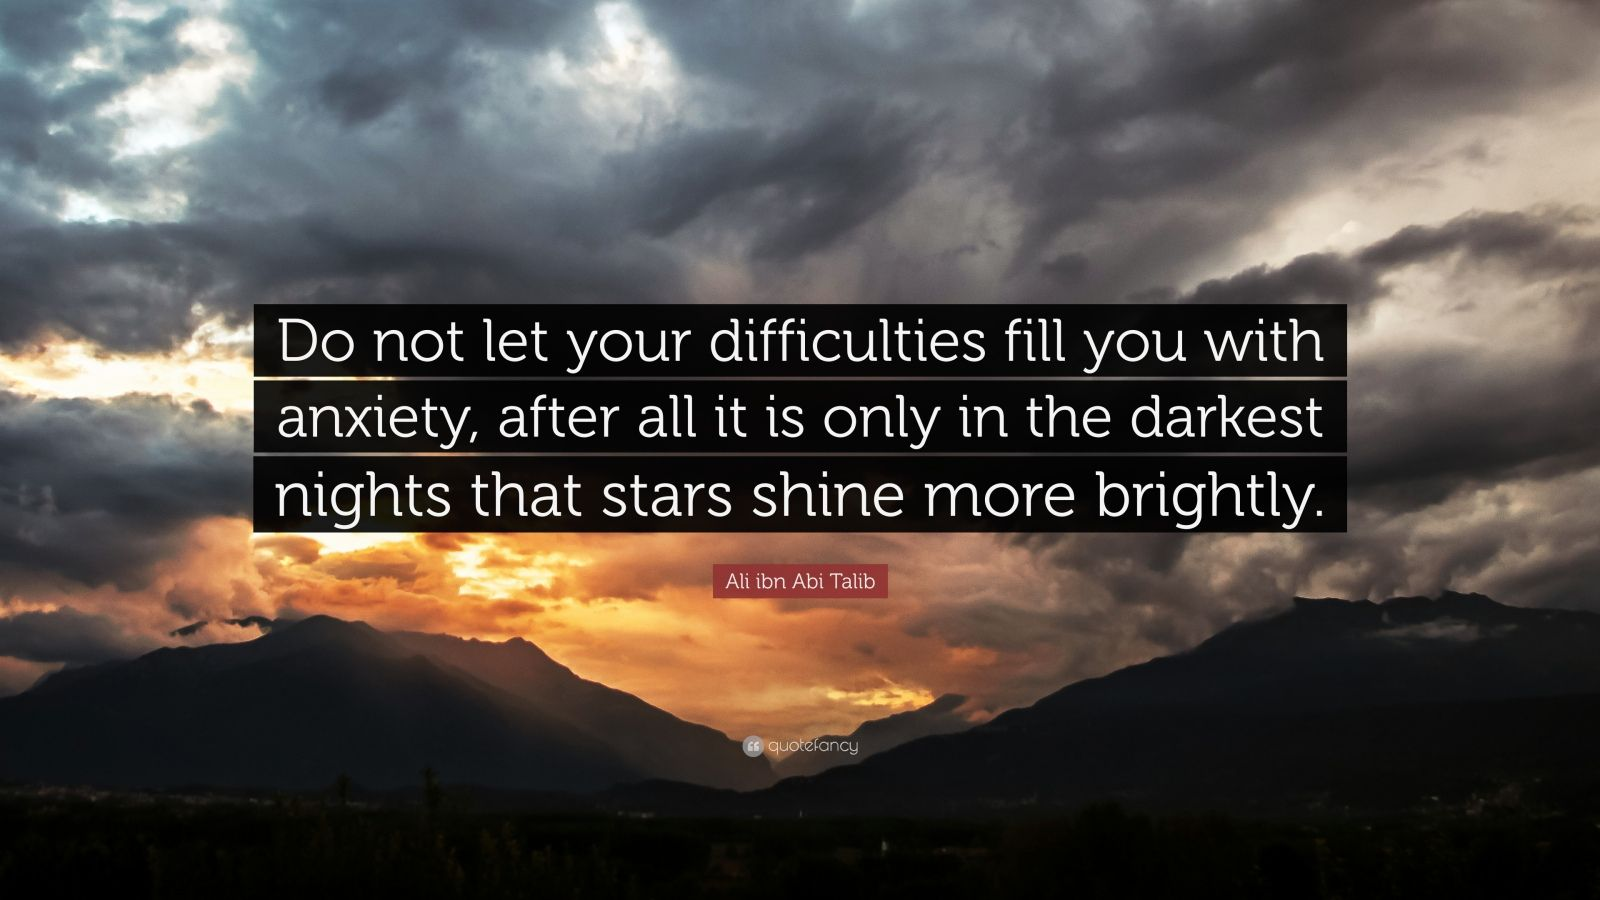 """Ali ibn Abi Talib Quote: """"Do not let your difficulties fill you with anxiety, after all it is only in the darkest nights that stars shine more brightly."""""""